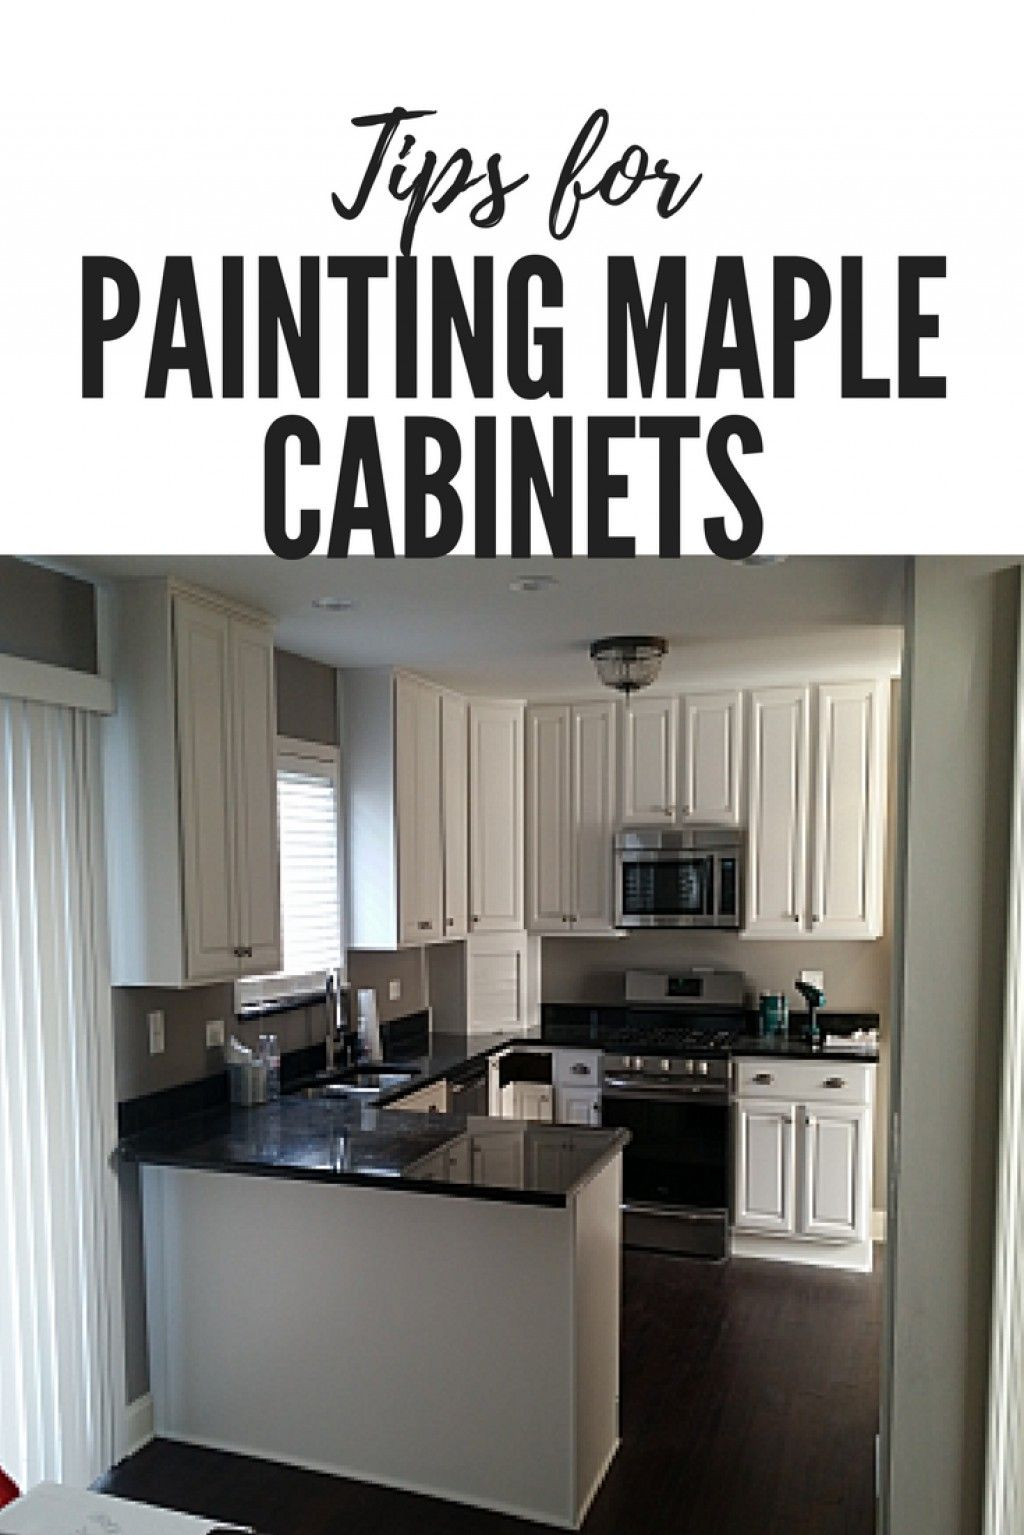 Tips For Painting Maple Cabinets With Images Maple Kitchen Cabinets Maple Cabinets New Kitchen Cabinets